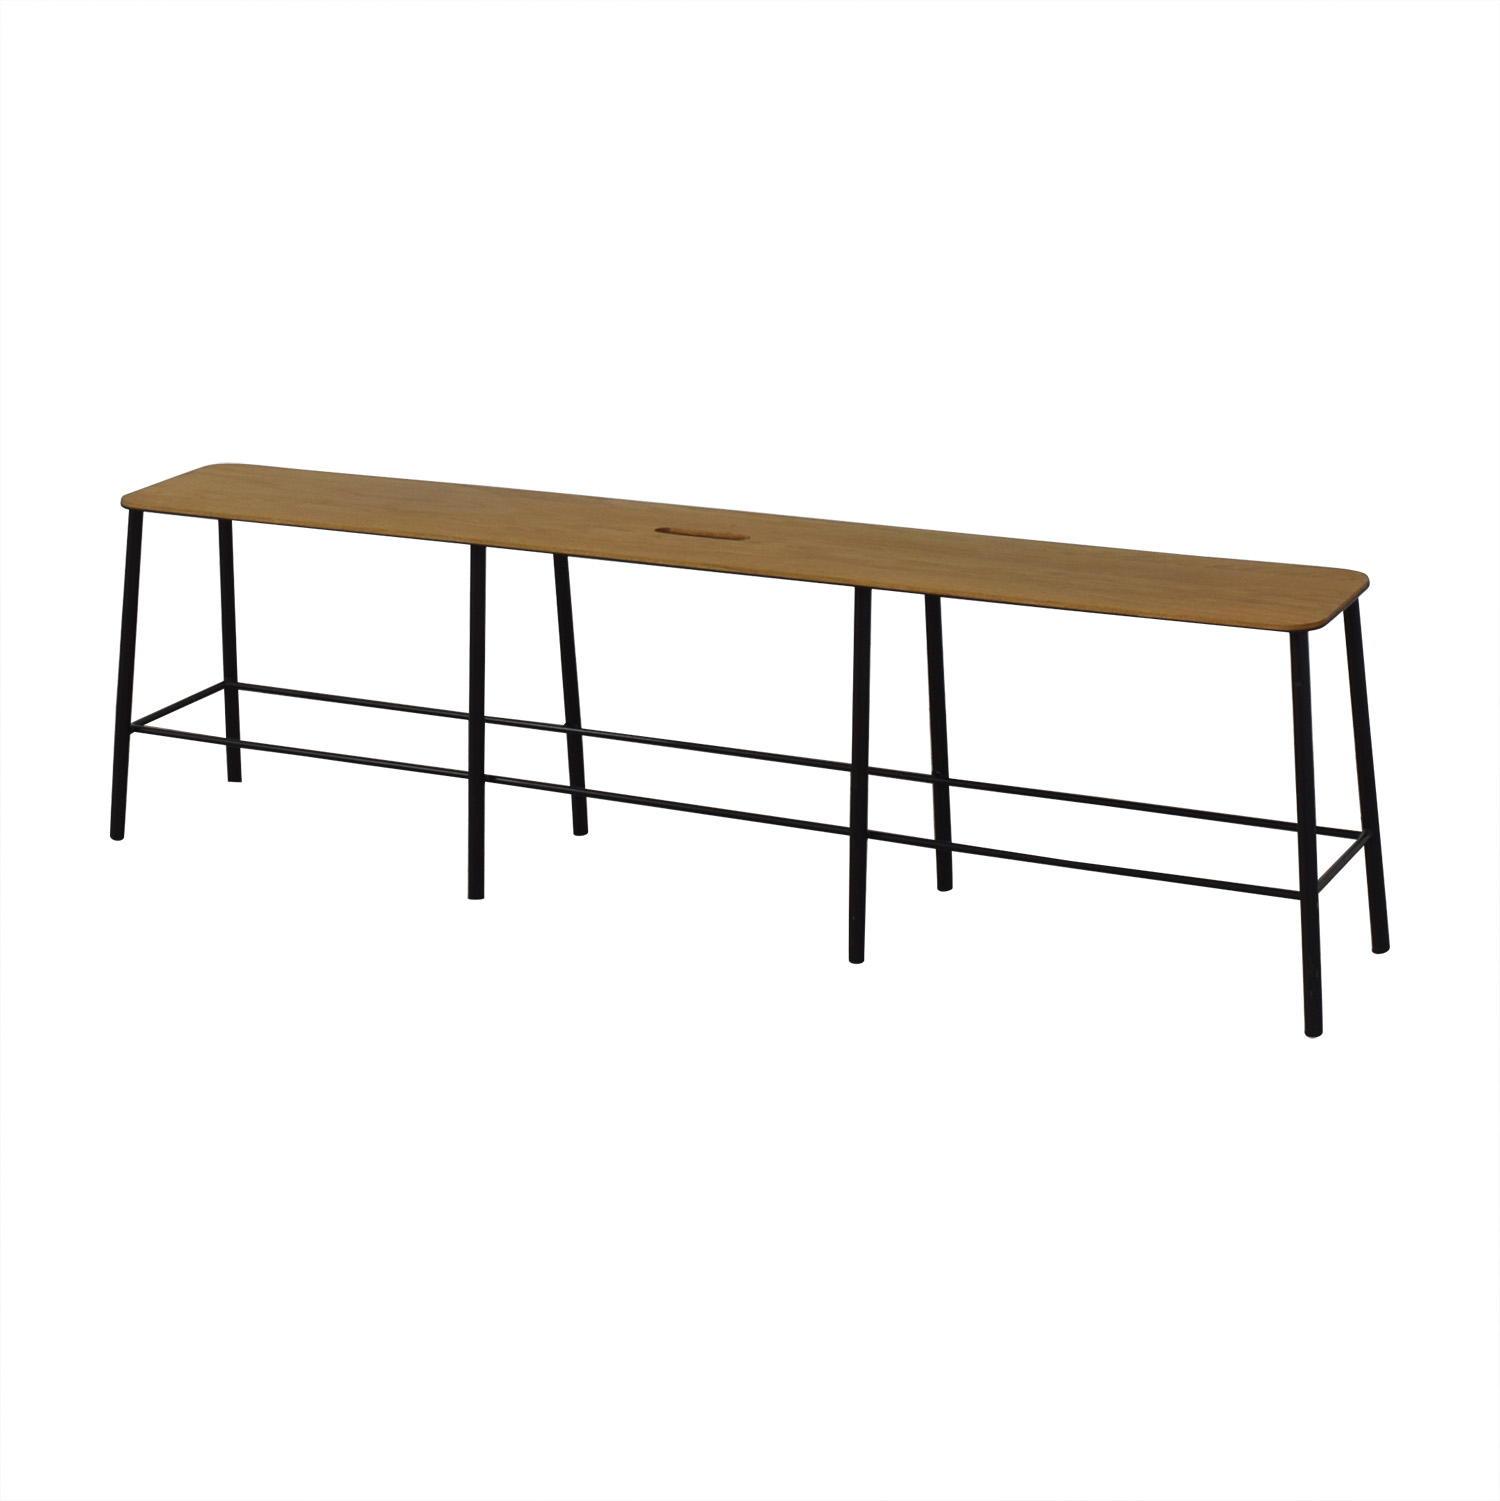 Frama Frama Adam Collection Bench for sale